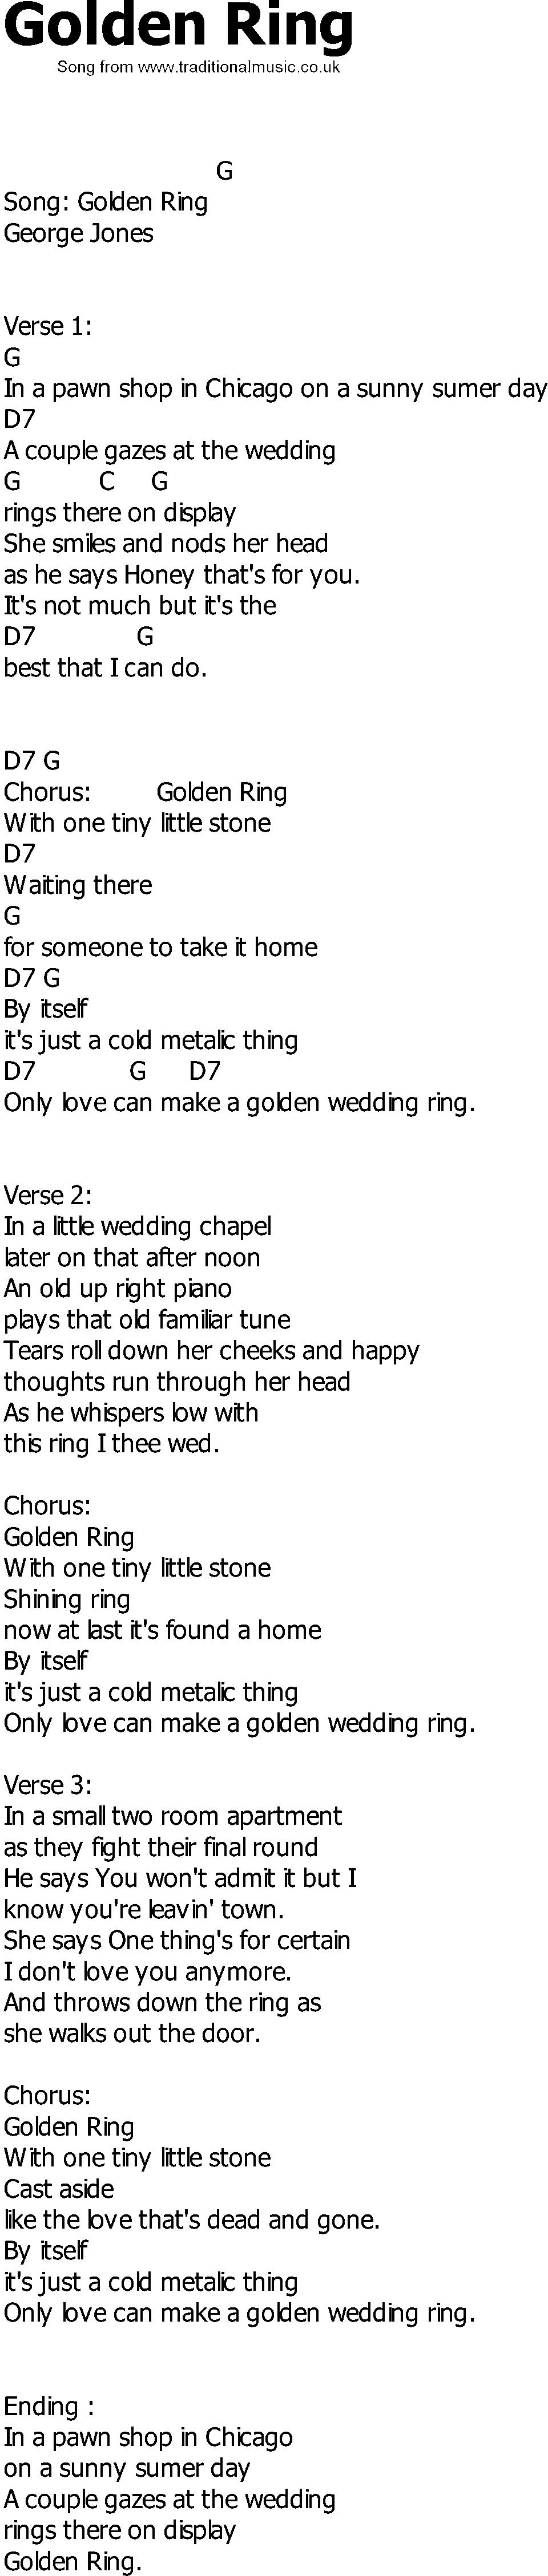 Fresh Wedding Ring Lyrics